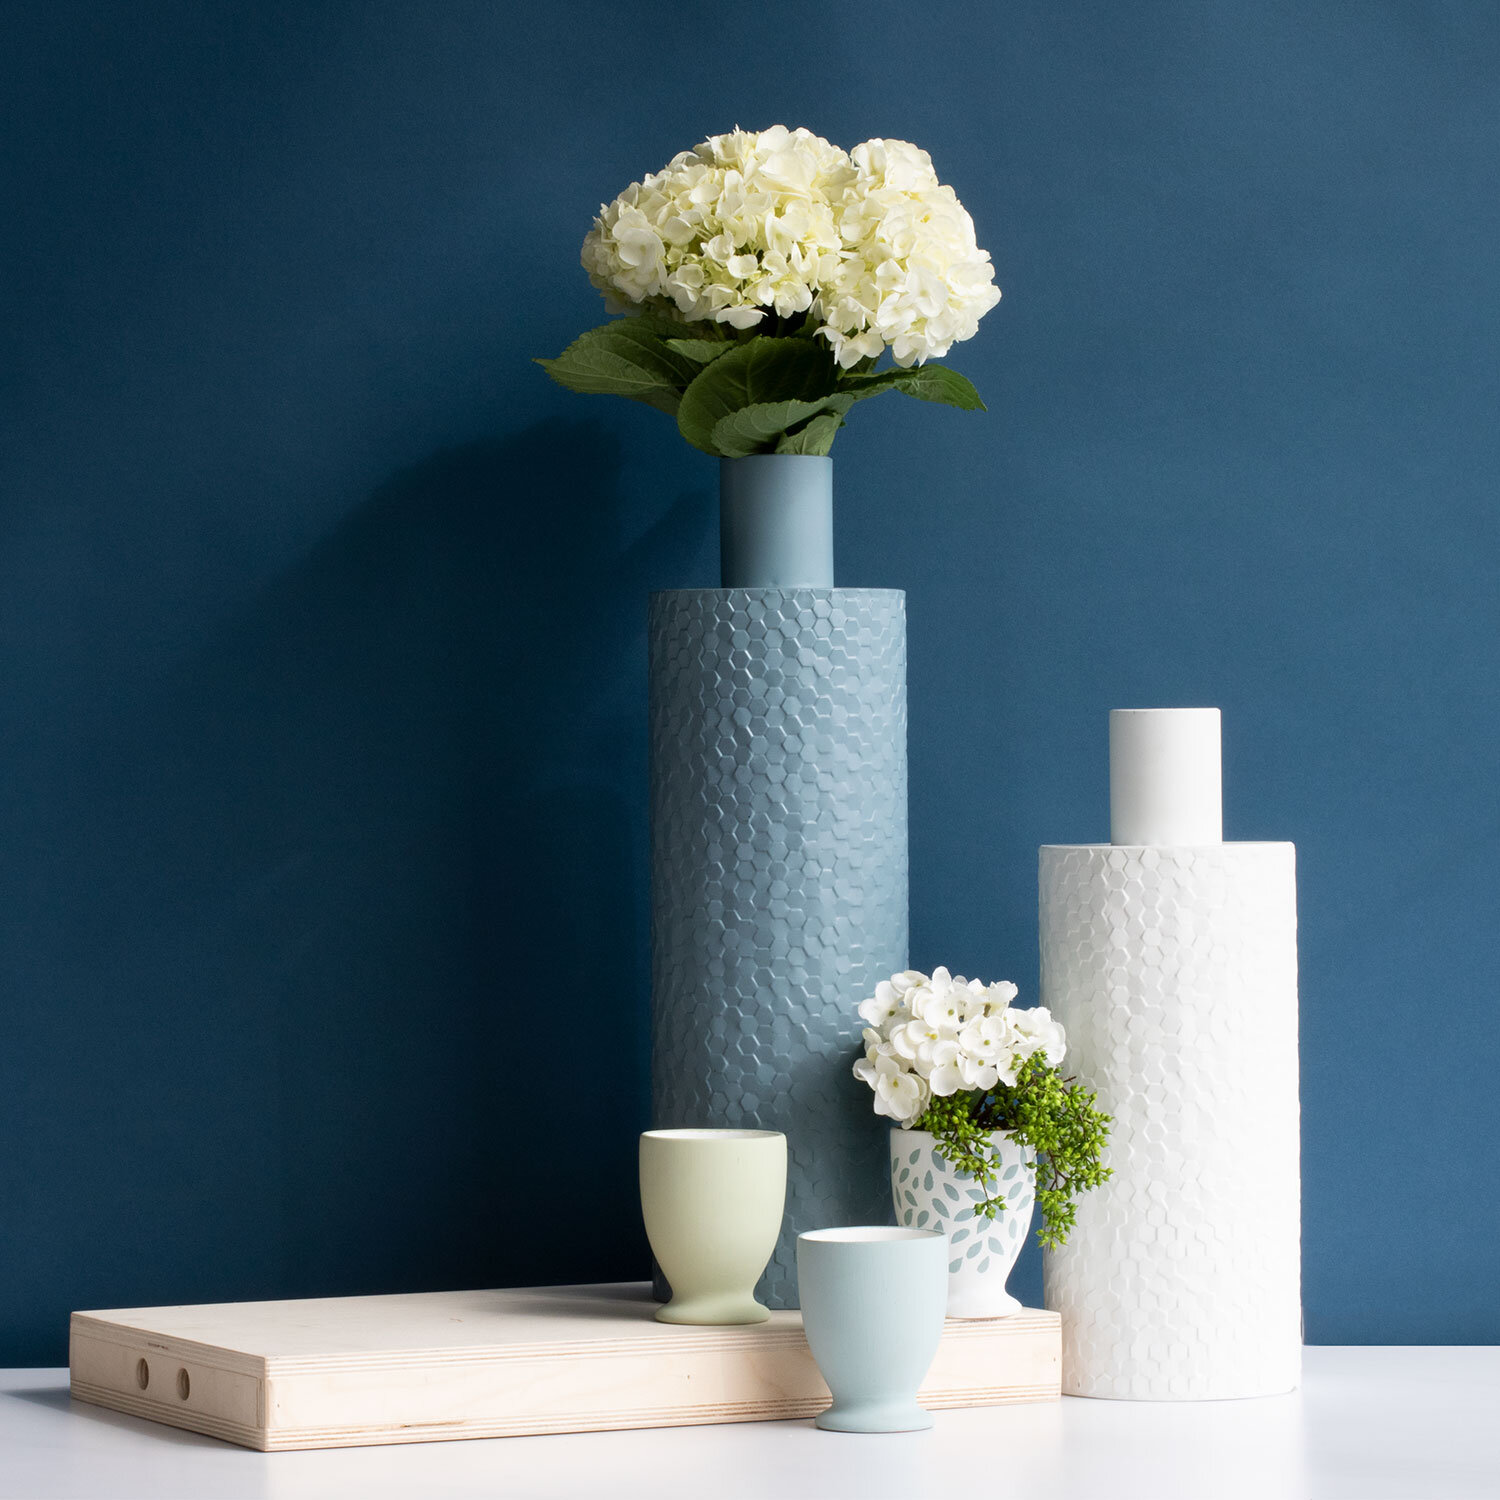 Items Shown:  Lanky Vase Blue ,  Lanky Vase White ,  Footed Planter, 3 colors